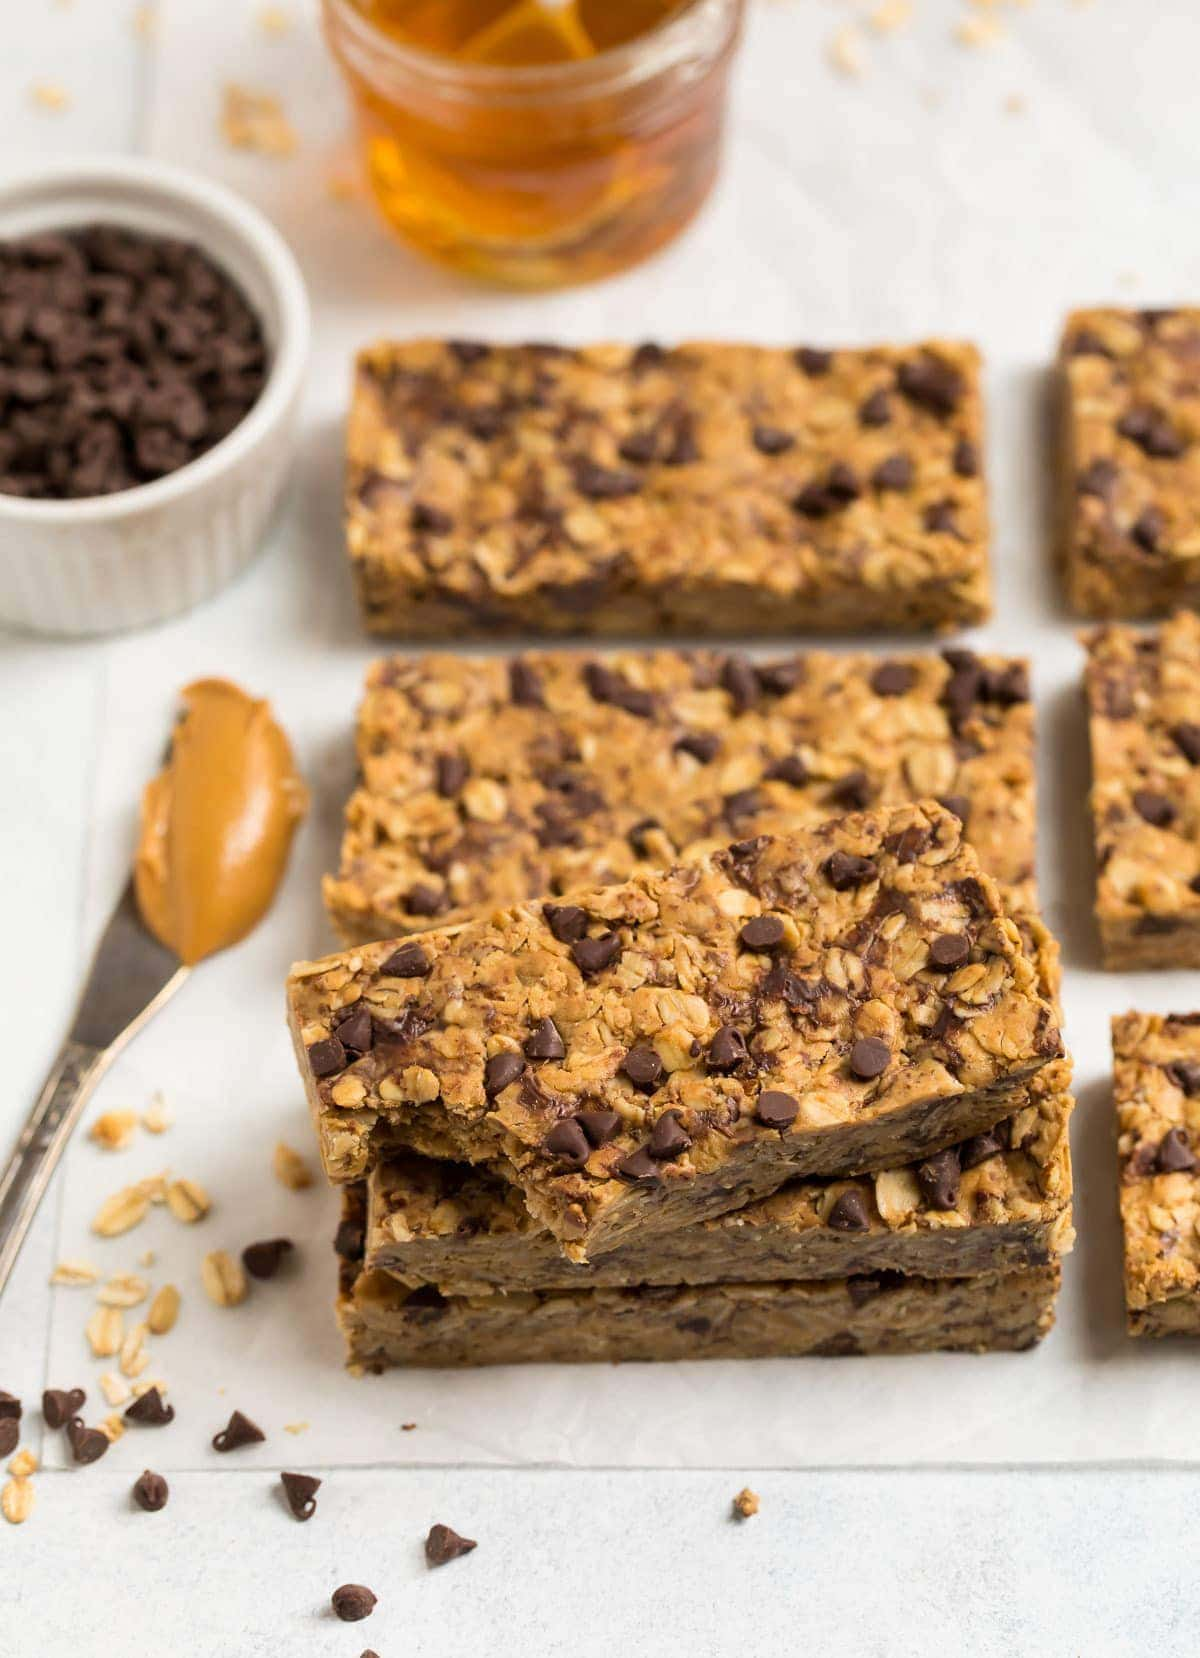 protein bars as snaccks